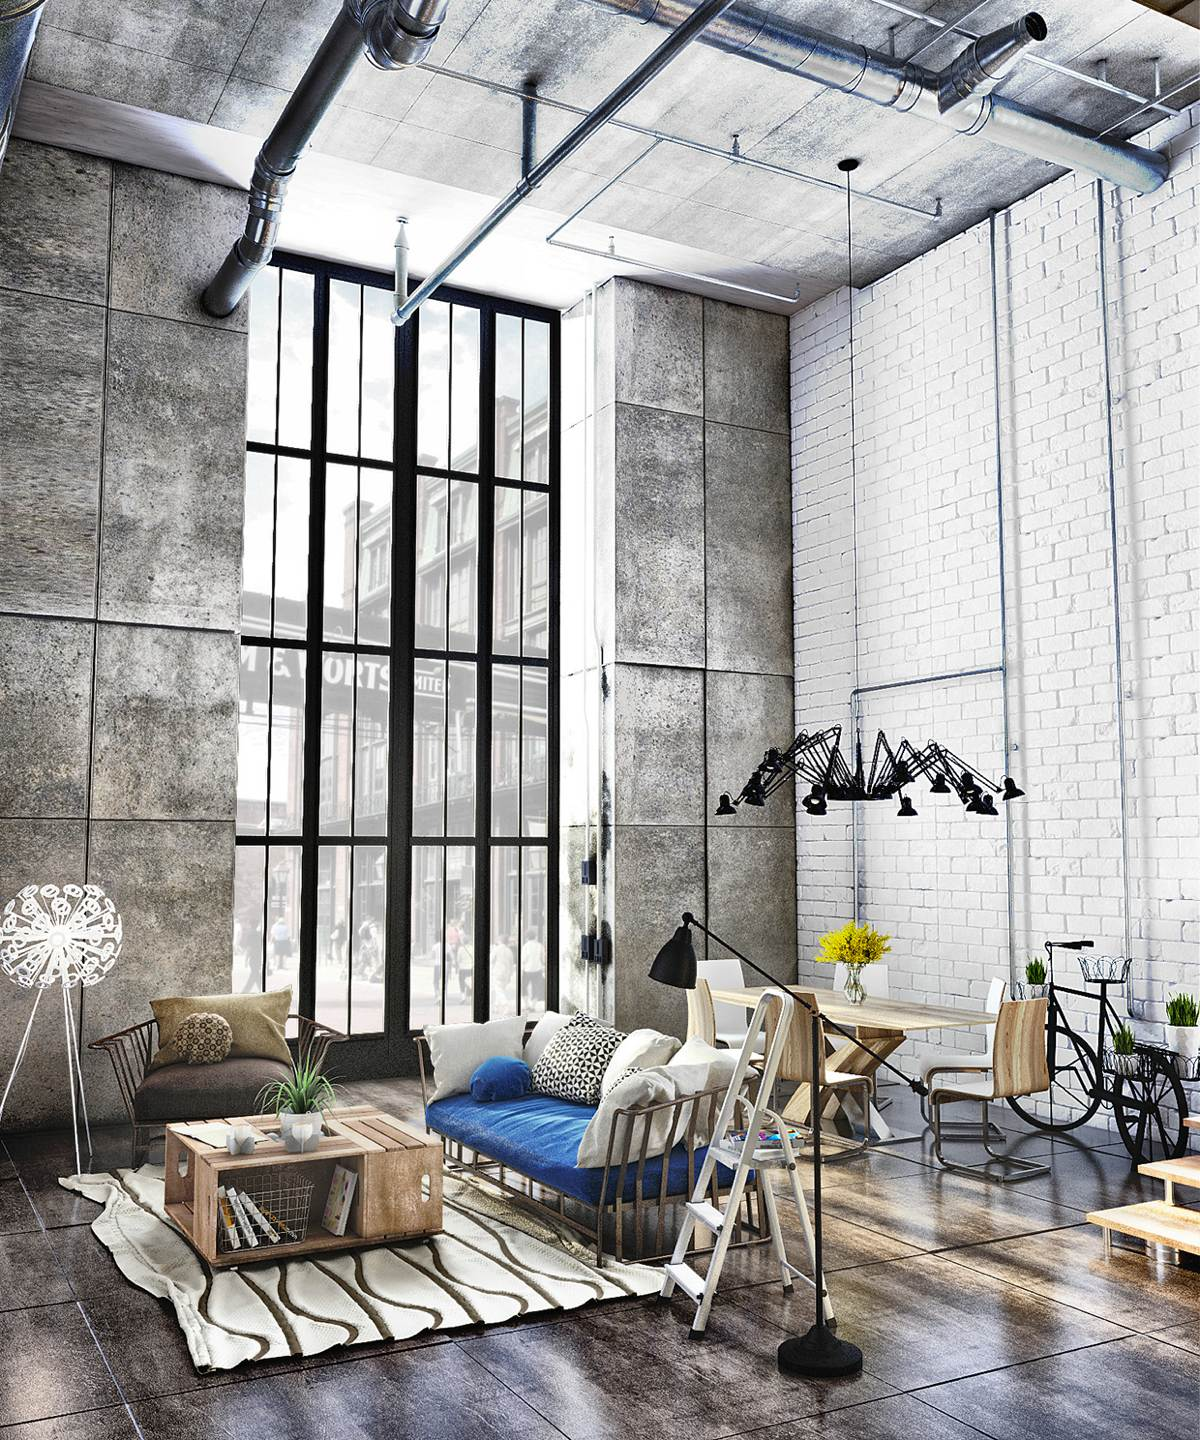 40 Stylish Living Rooms That Use Concrete To Stand Out images 24